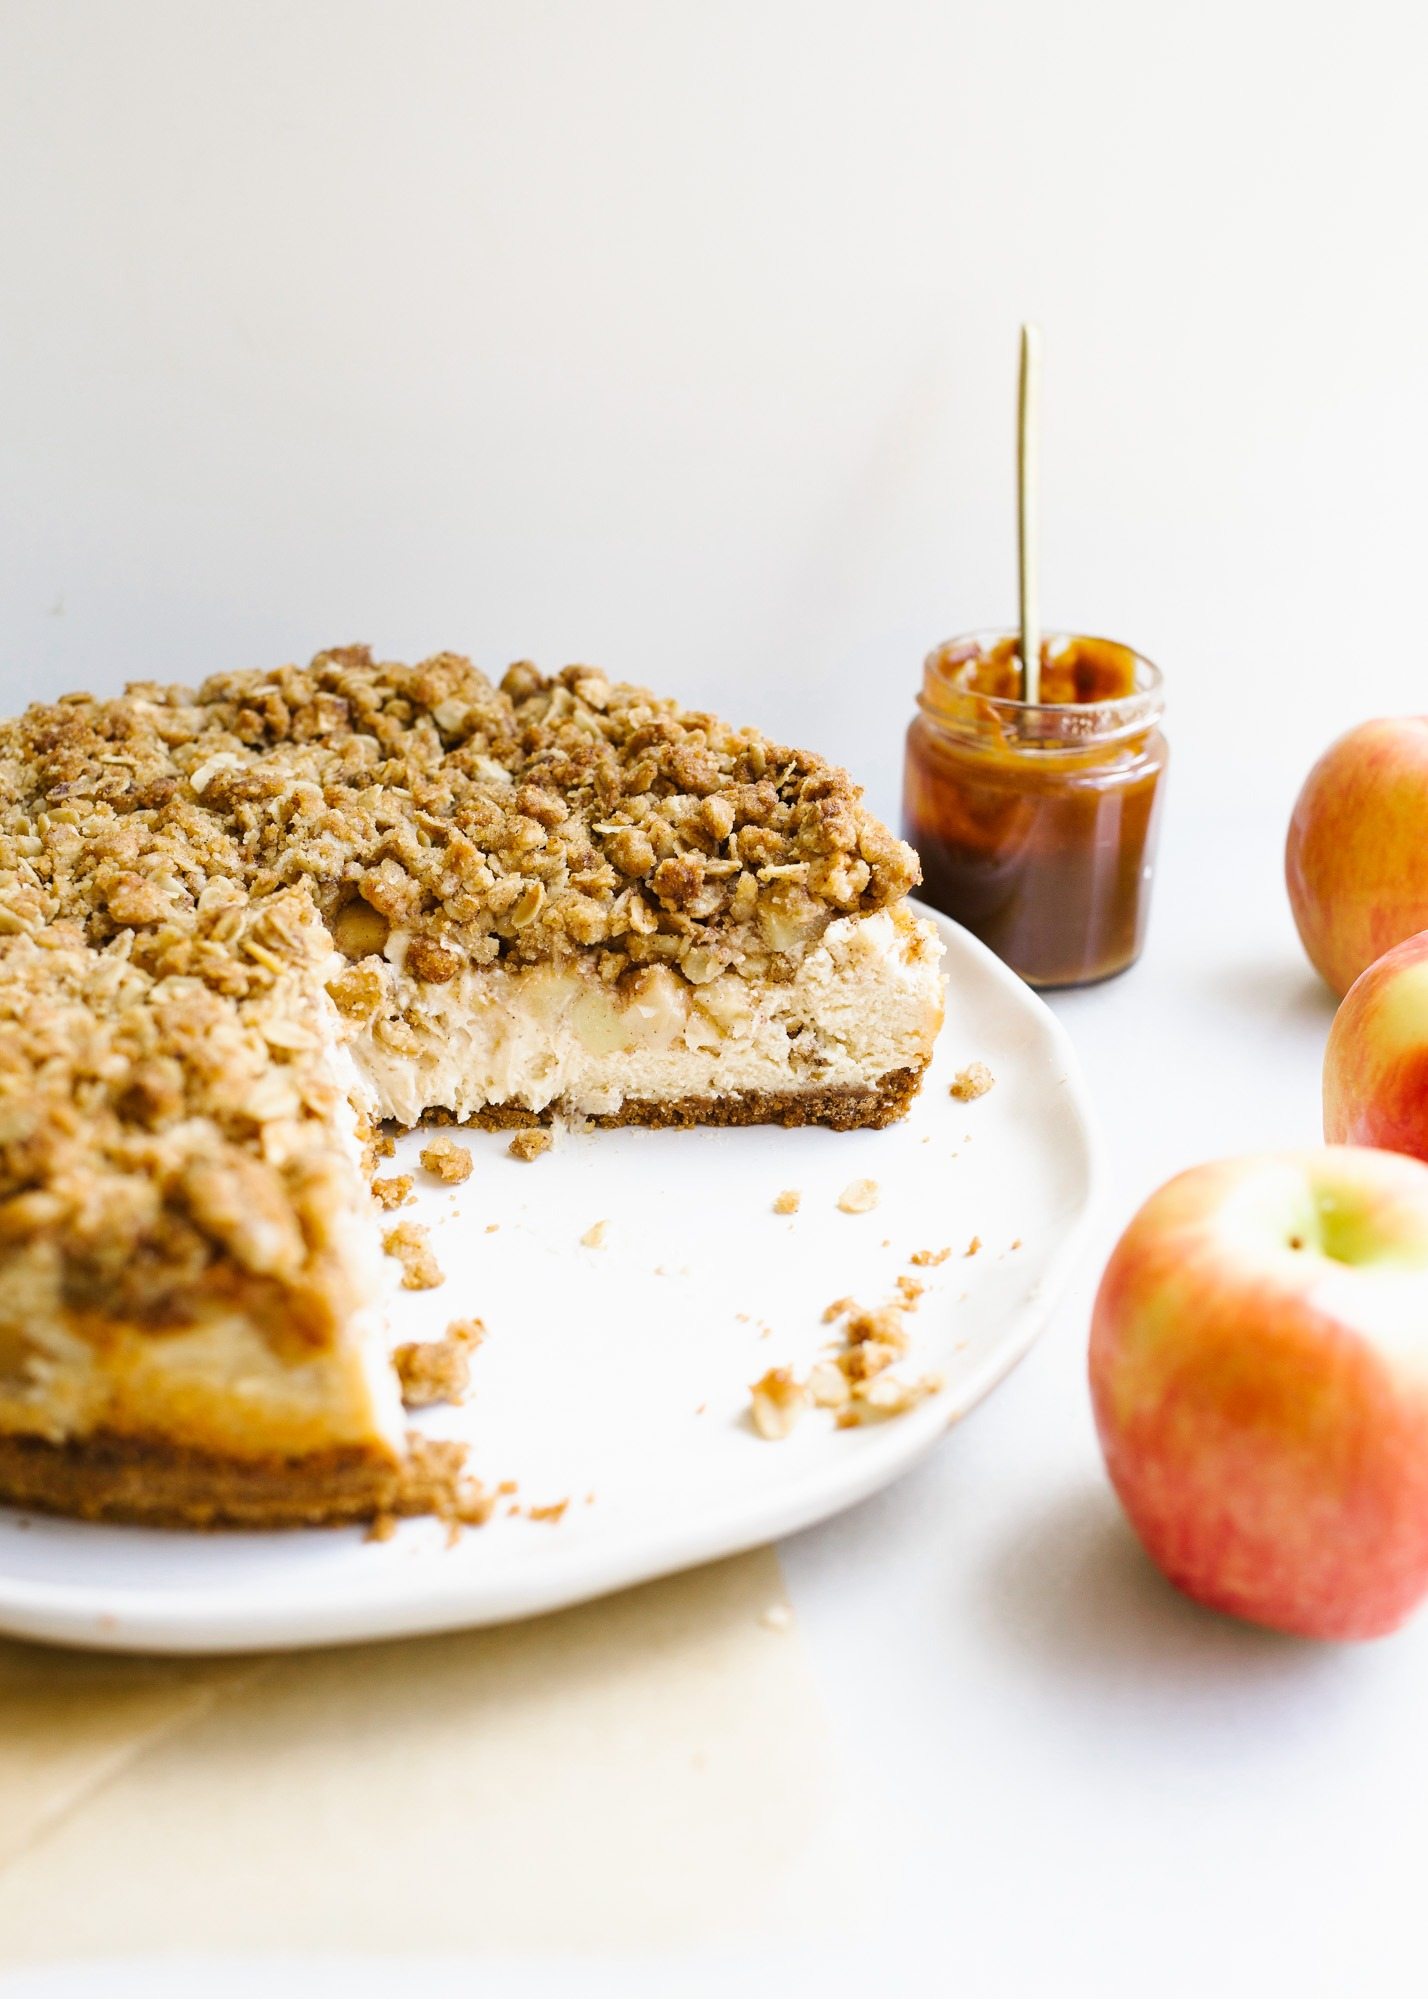 Apple Crisp Cheesecake by Wood and Spoon blog. This autumn dessert recipe from Kelsey Siemens features a spiced graham cracker crust, a salted caramel cheesecake filling, fresh apples, and a crumbly brown sugar streusel topping. Served with salted caramel and loads of warm fall flavors, this cake is a terrific make ahead dessert for the holidays including Thanksgiving and Christmas. Learn how to make homemade cheesecake on thewoodandspoon.com